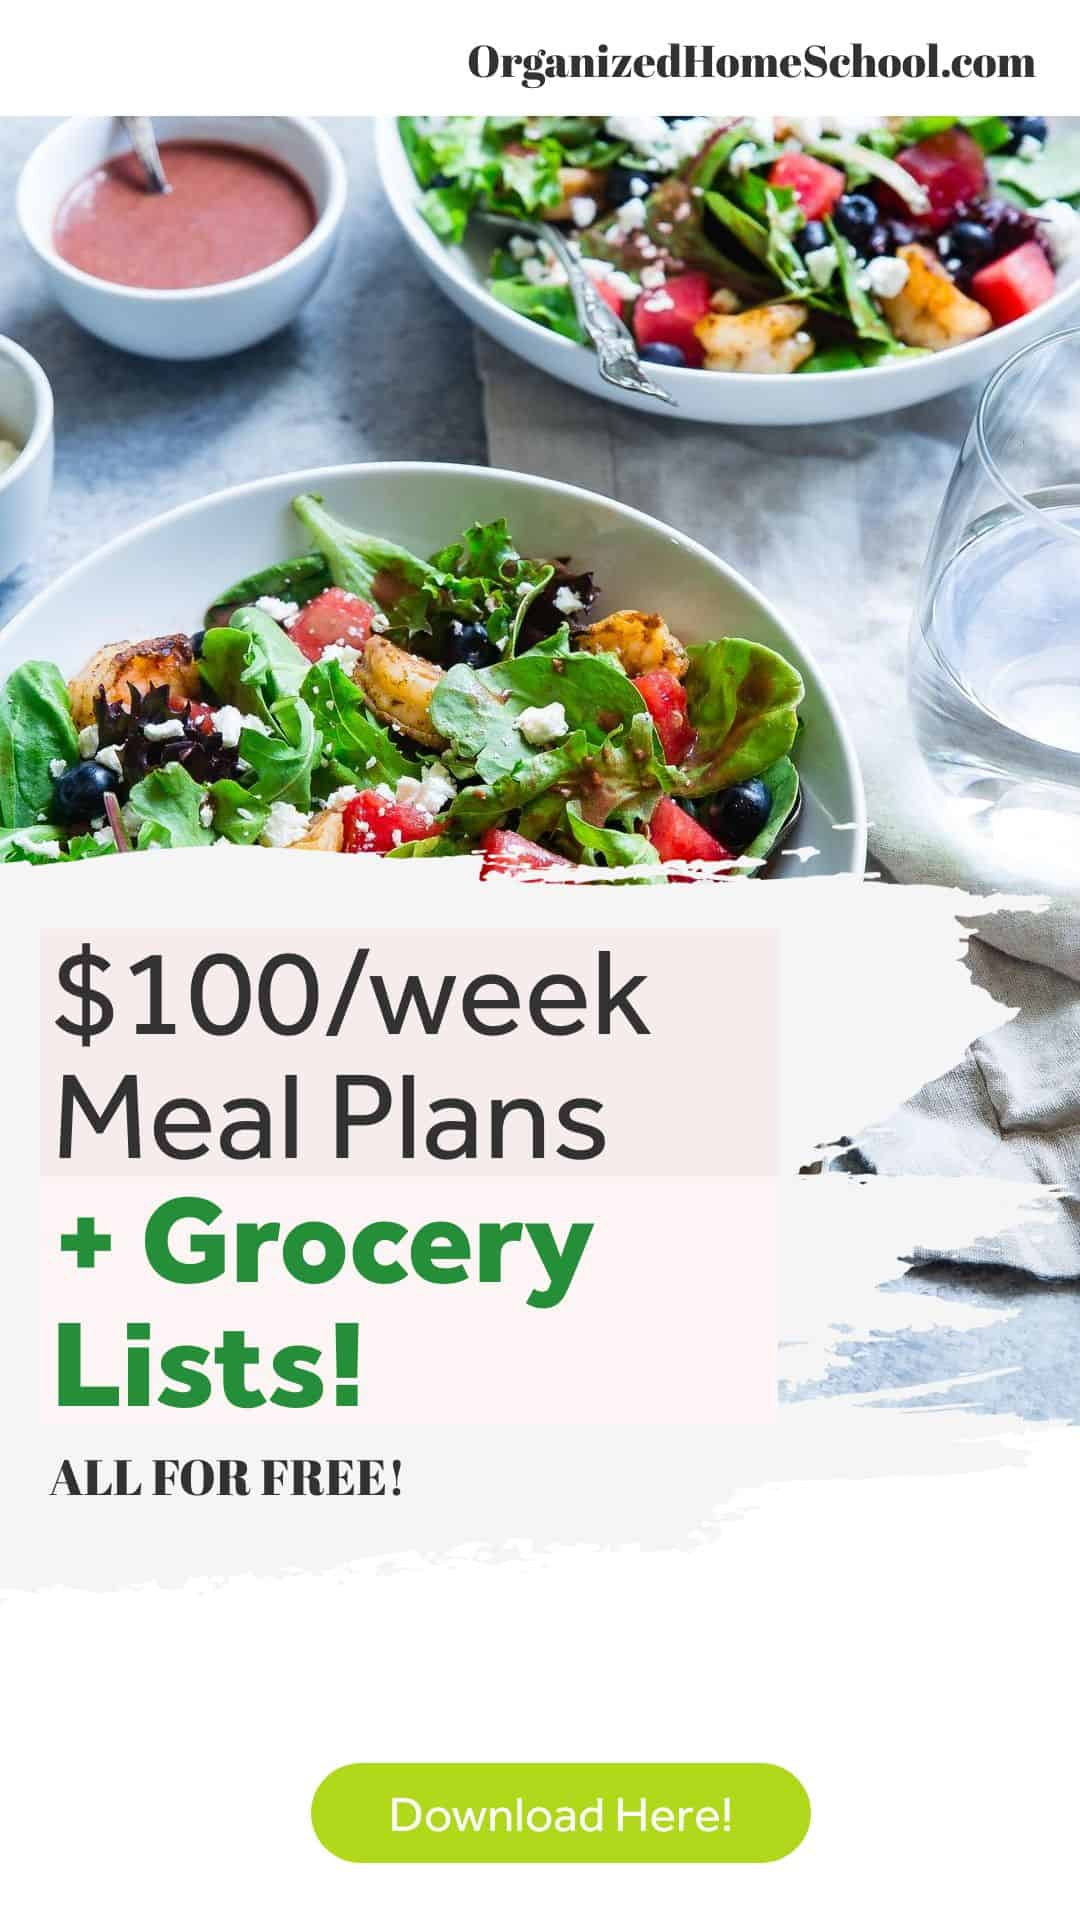 feed family for 100 week meal plans